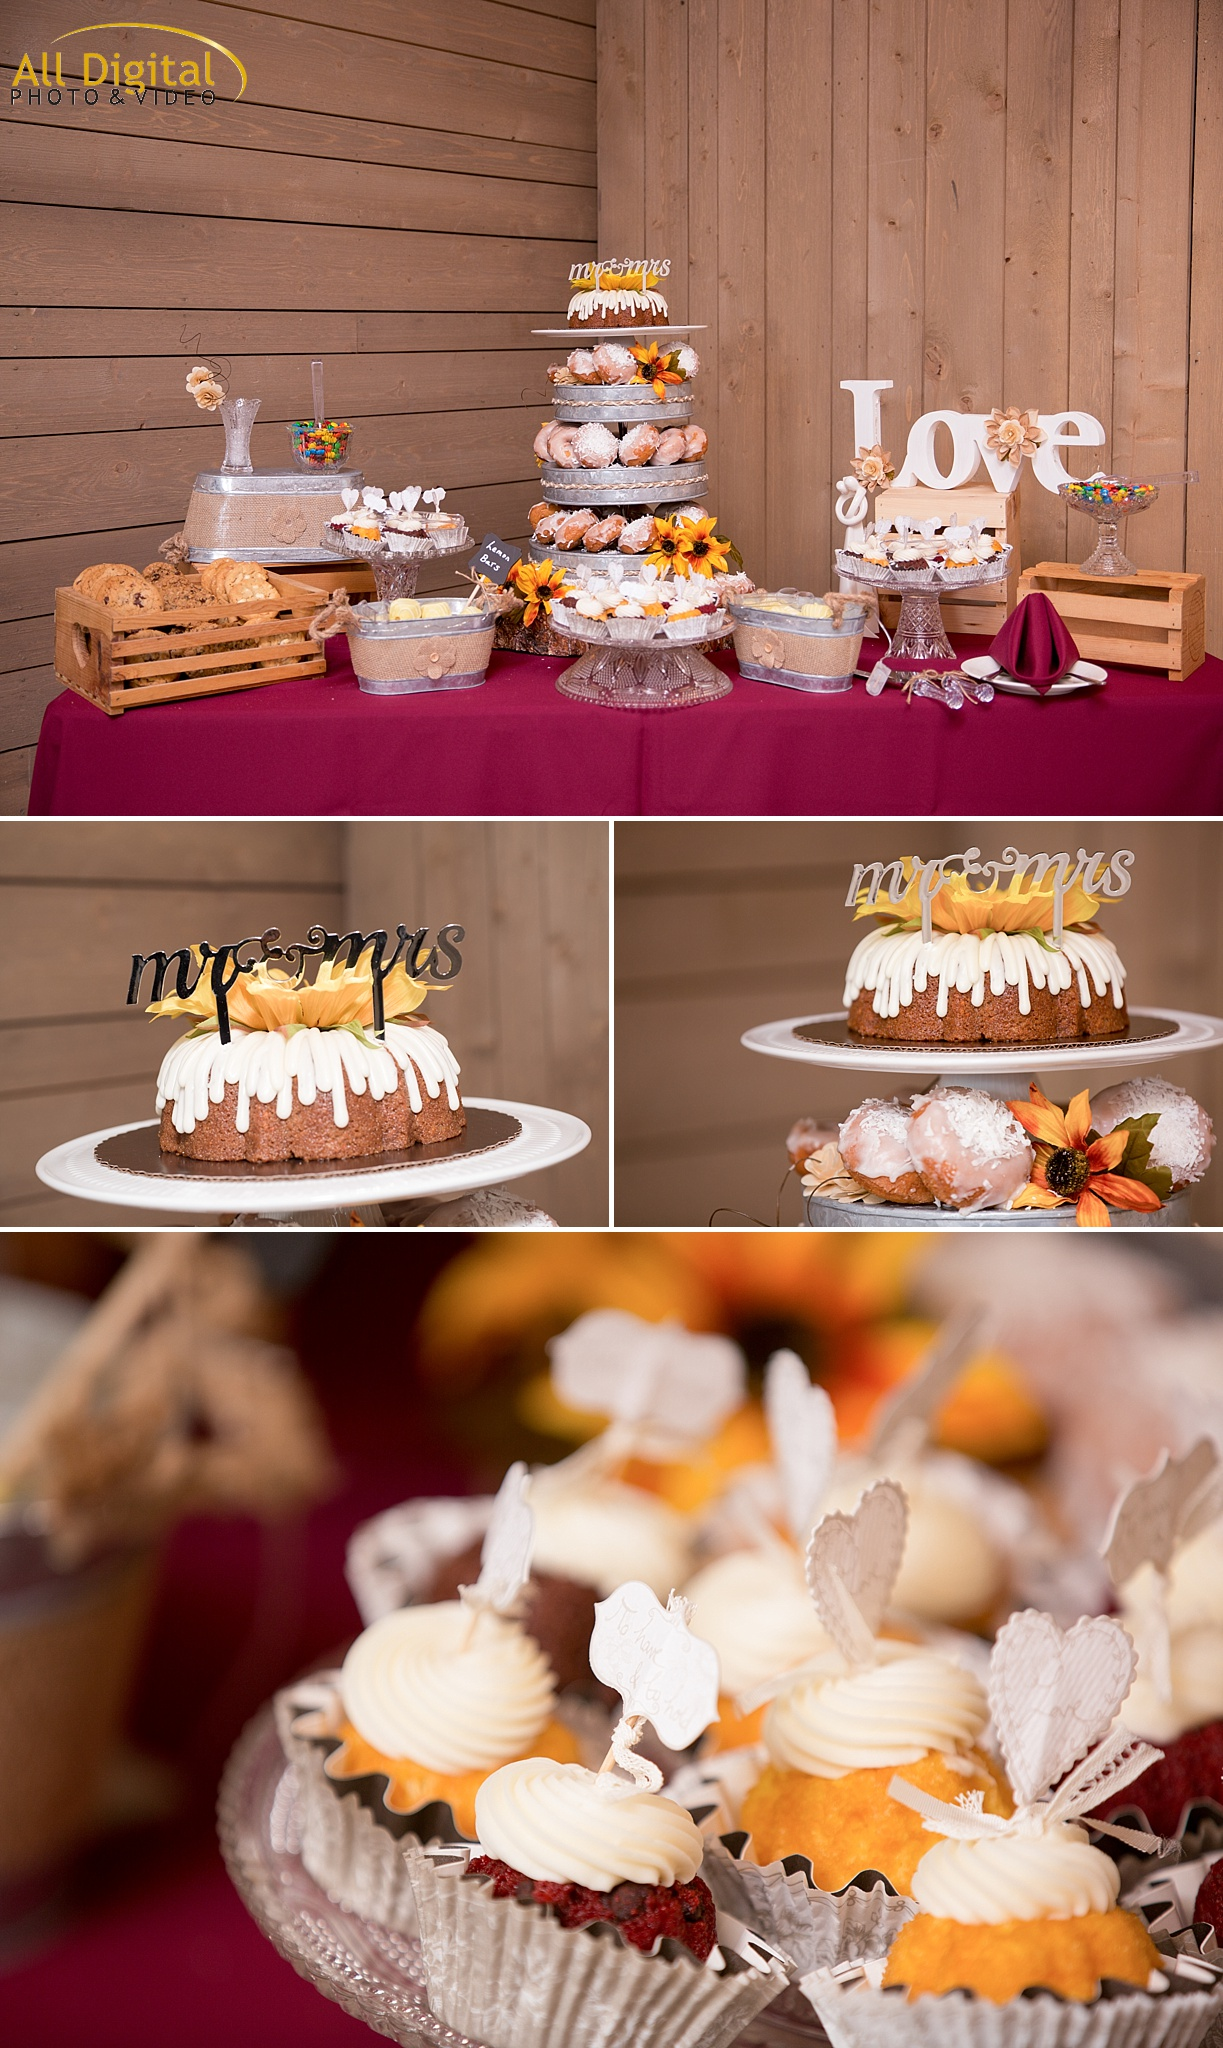 Tina & Nathan's Dessert Table at the Barn at Raccoon Creek